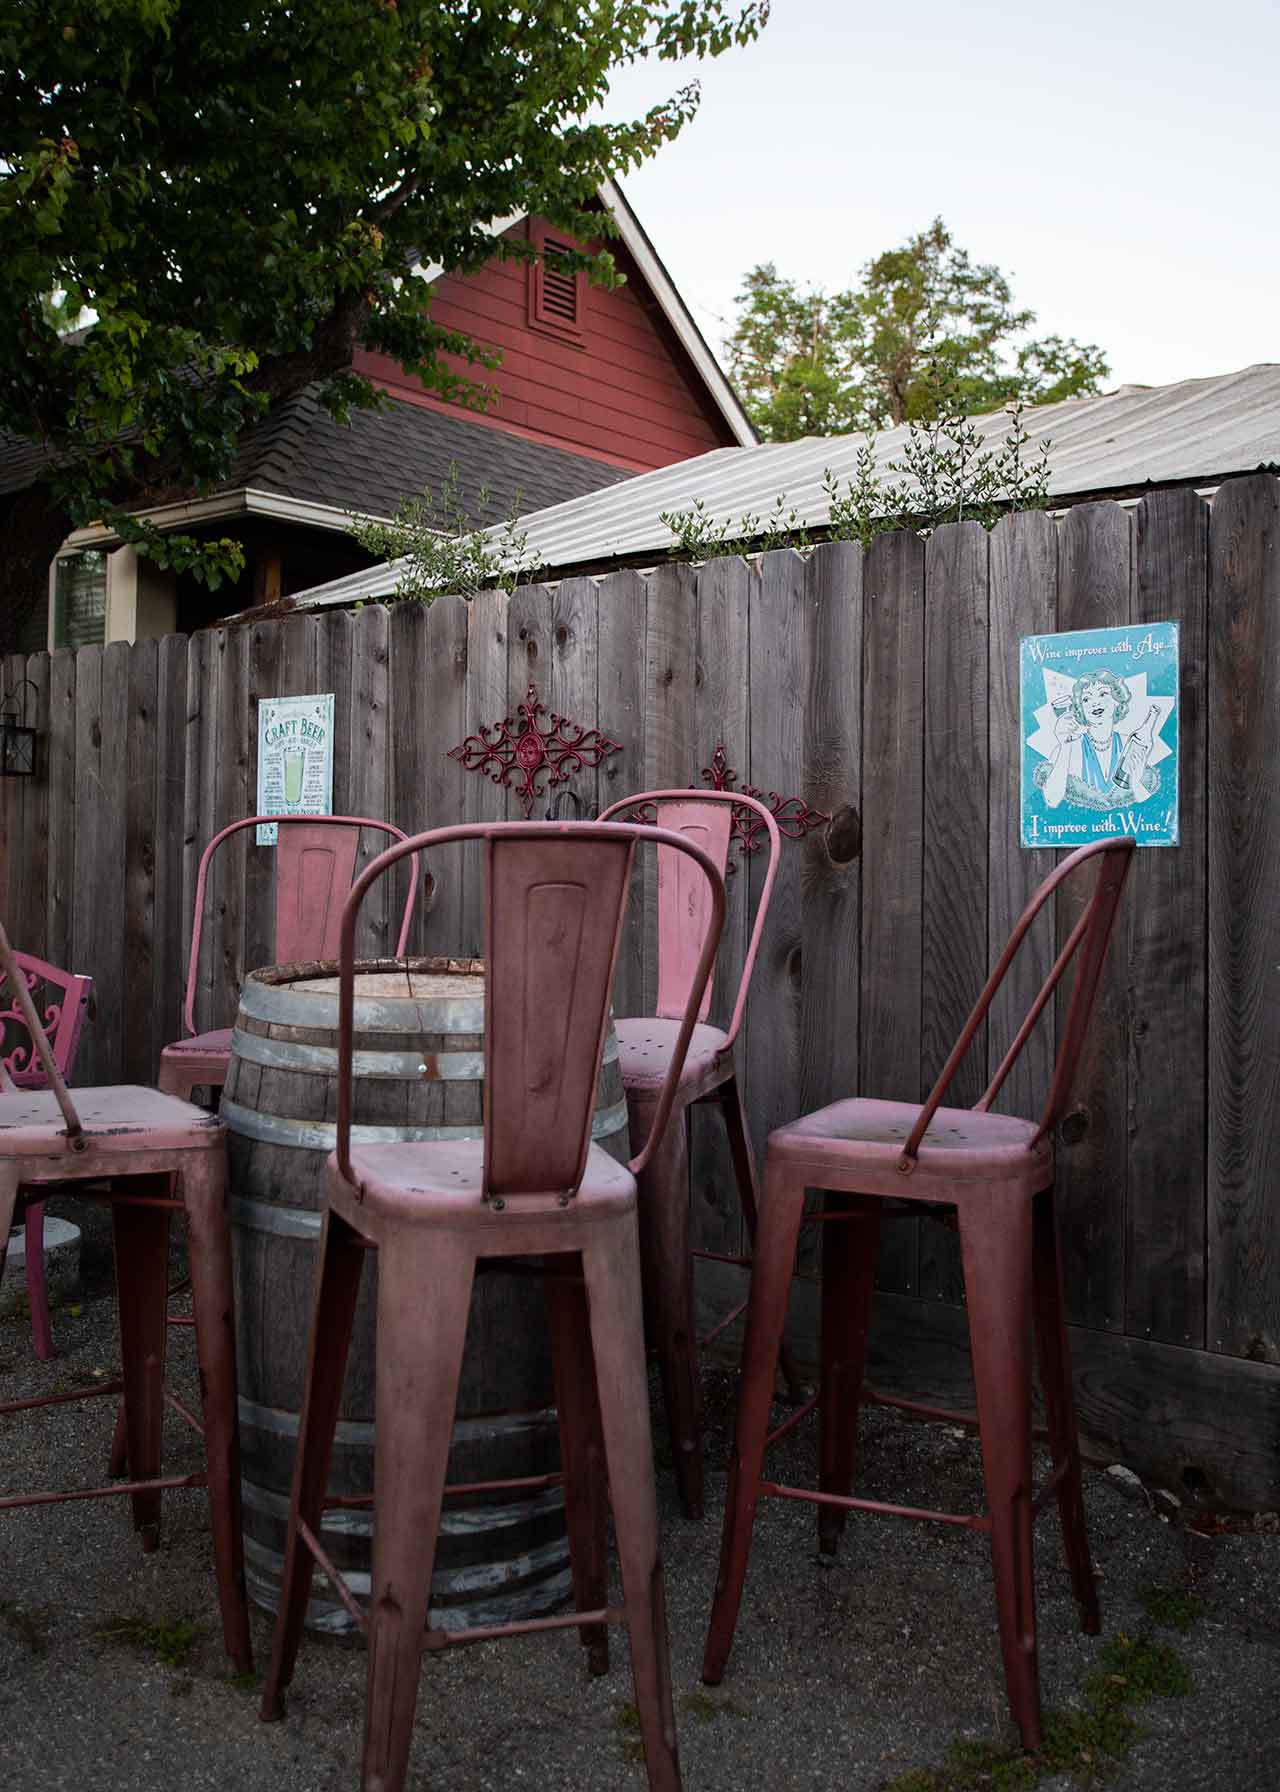 drive-swim-fly-18th-barrel-wine-and-beer-tasting-room-san-juan-bautista-california-alcohol-outdoor-seating-metal-chairs